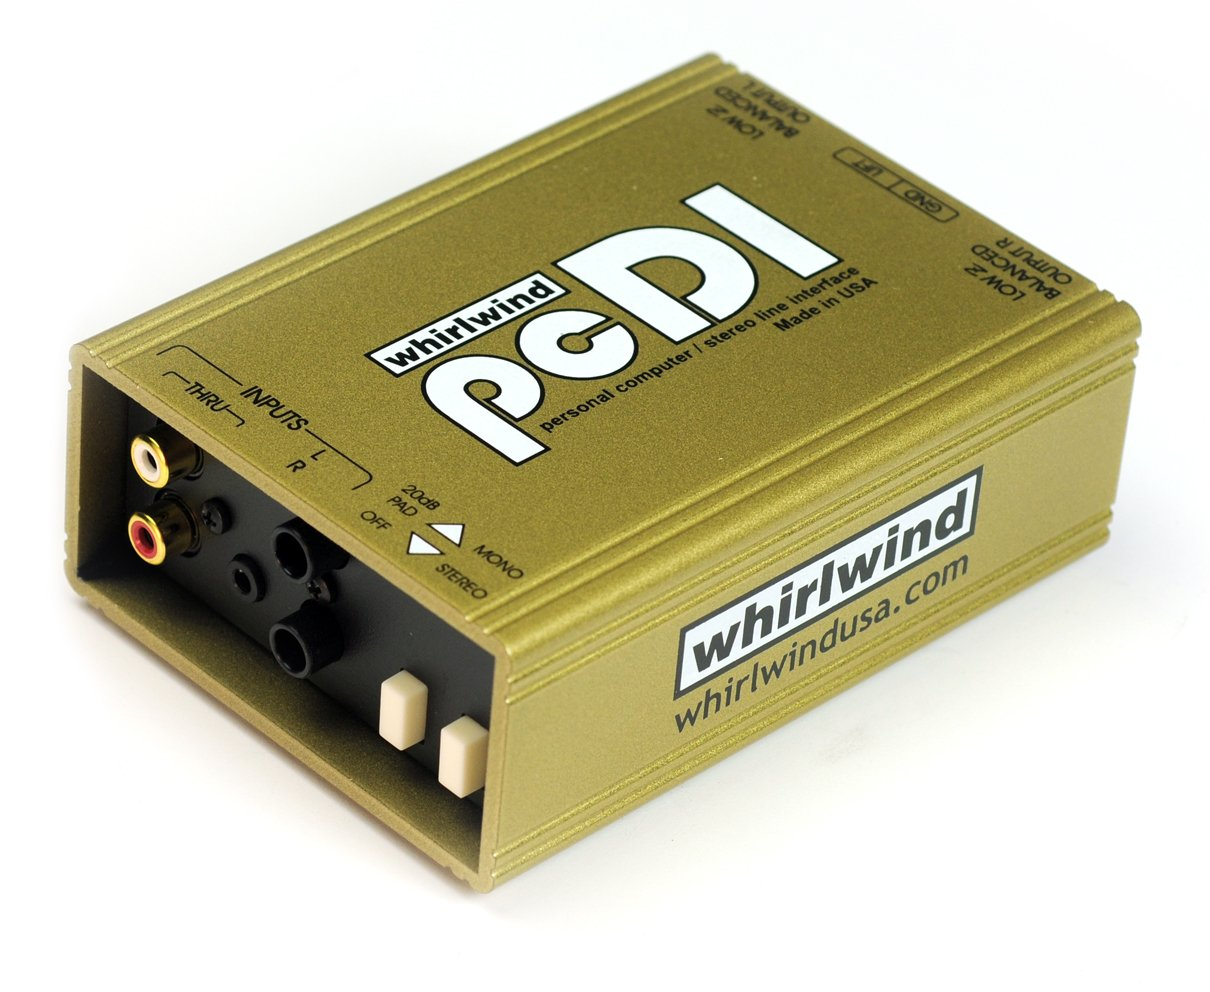 Whirlwind pcDI Direct Box for Interfacing Outputs CD Players, Sound Cards, iPod  MP3 Players by Whirlwind